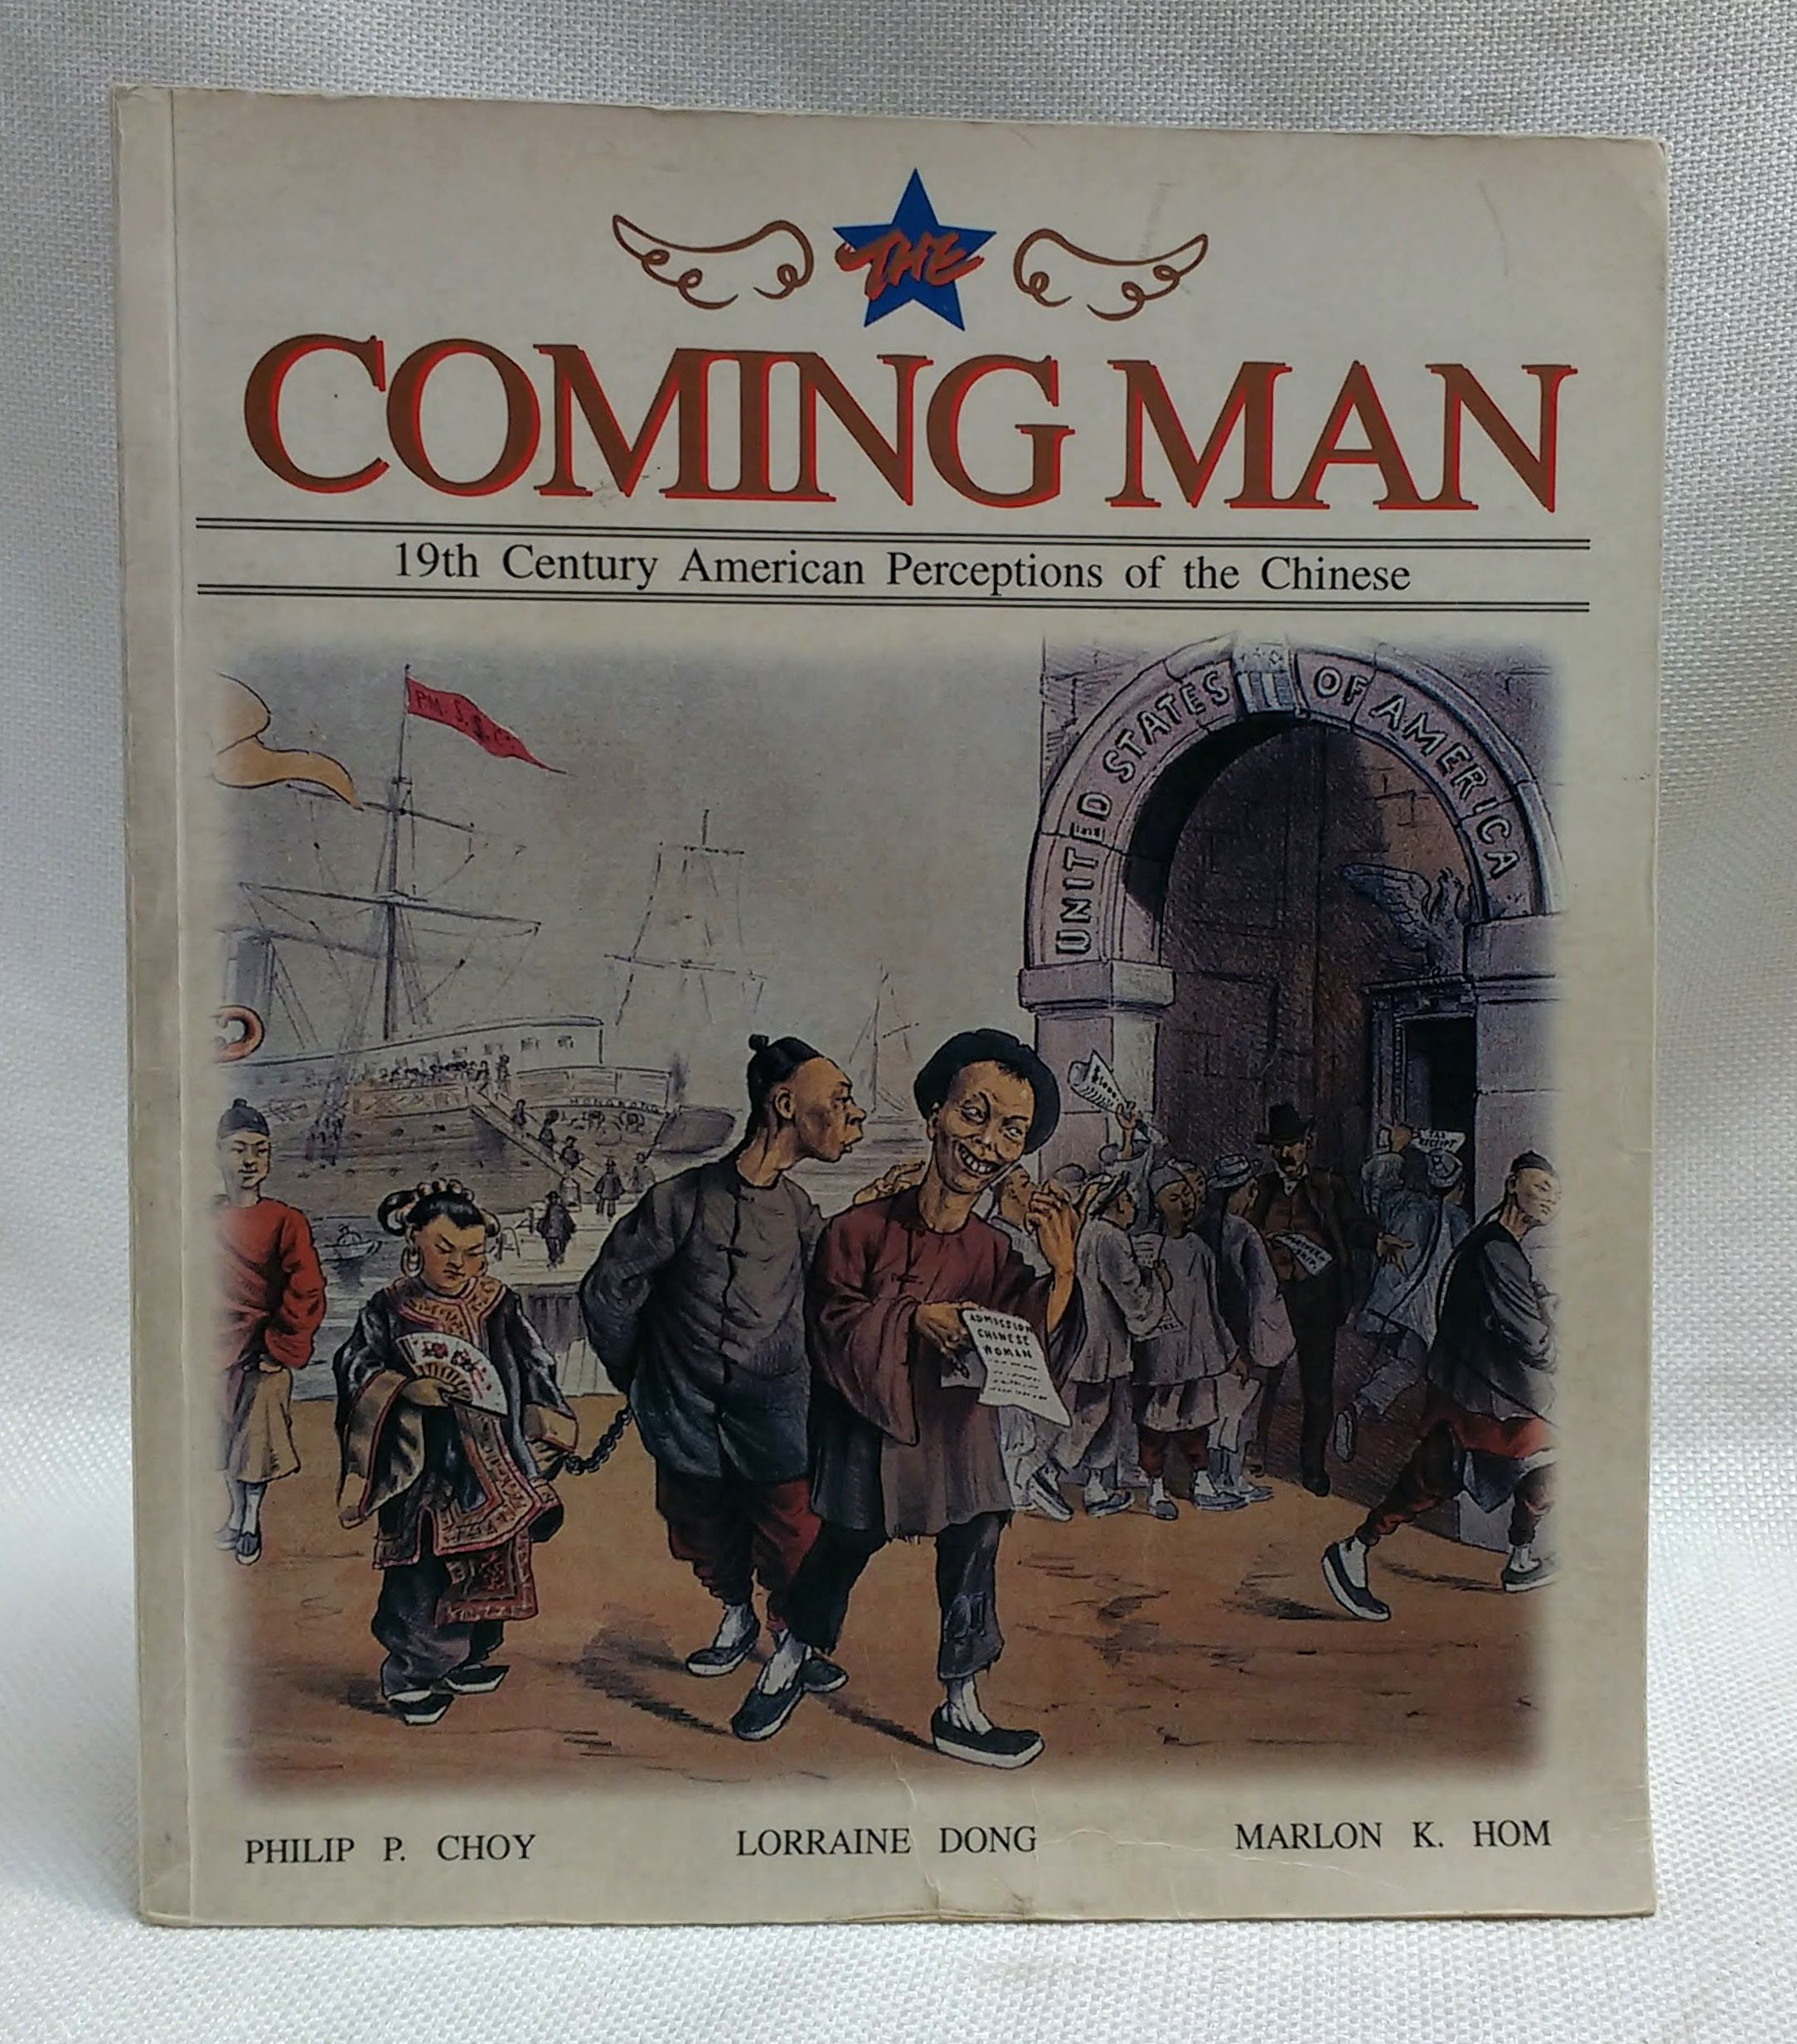 The Coming Man: 19th Century American Perceptions of the Chinese, Choy, Philip P. ; Dong, Lorraine and Hom, Marlon K.